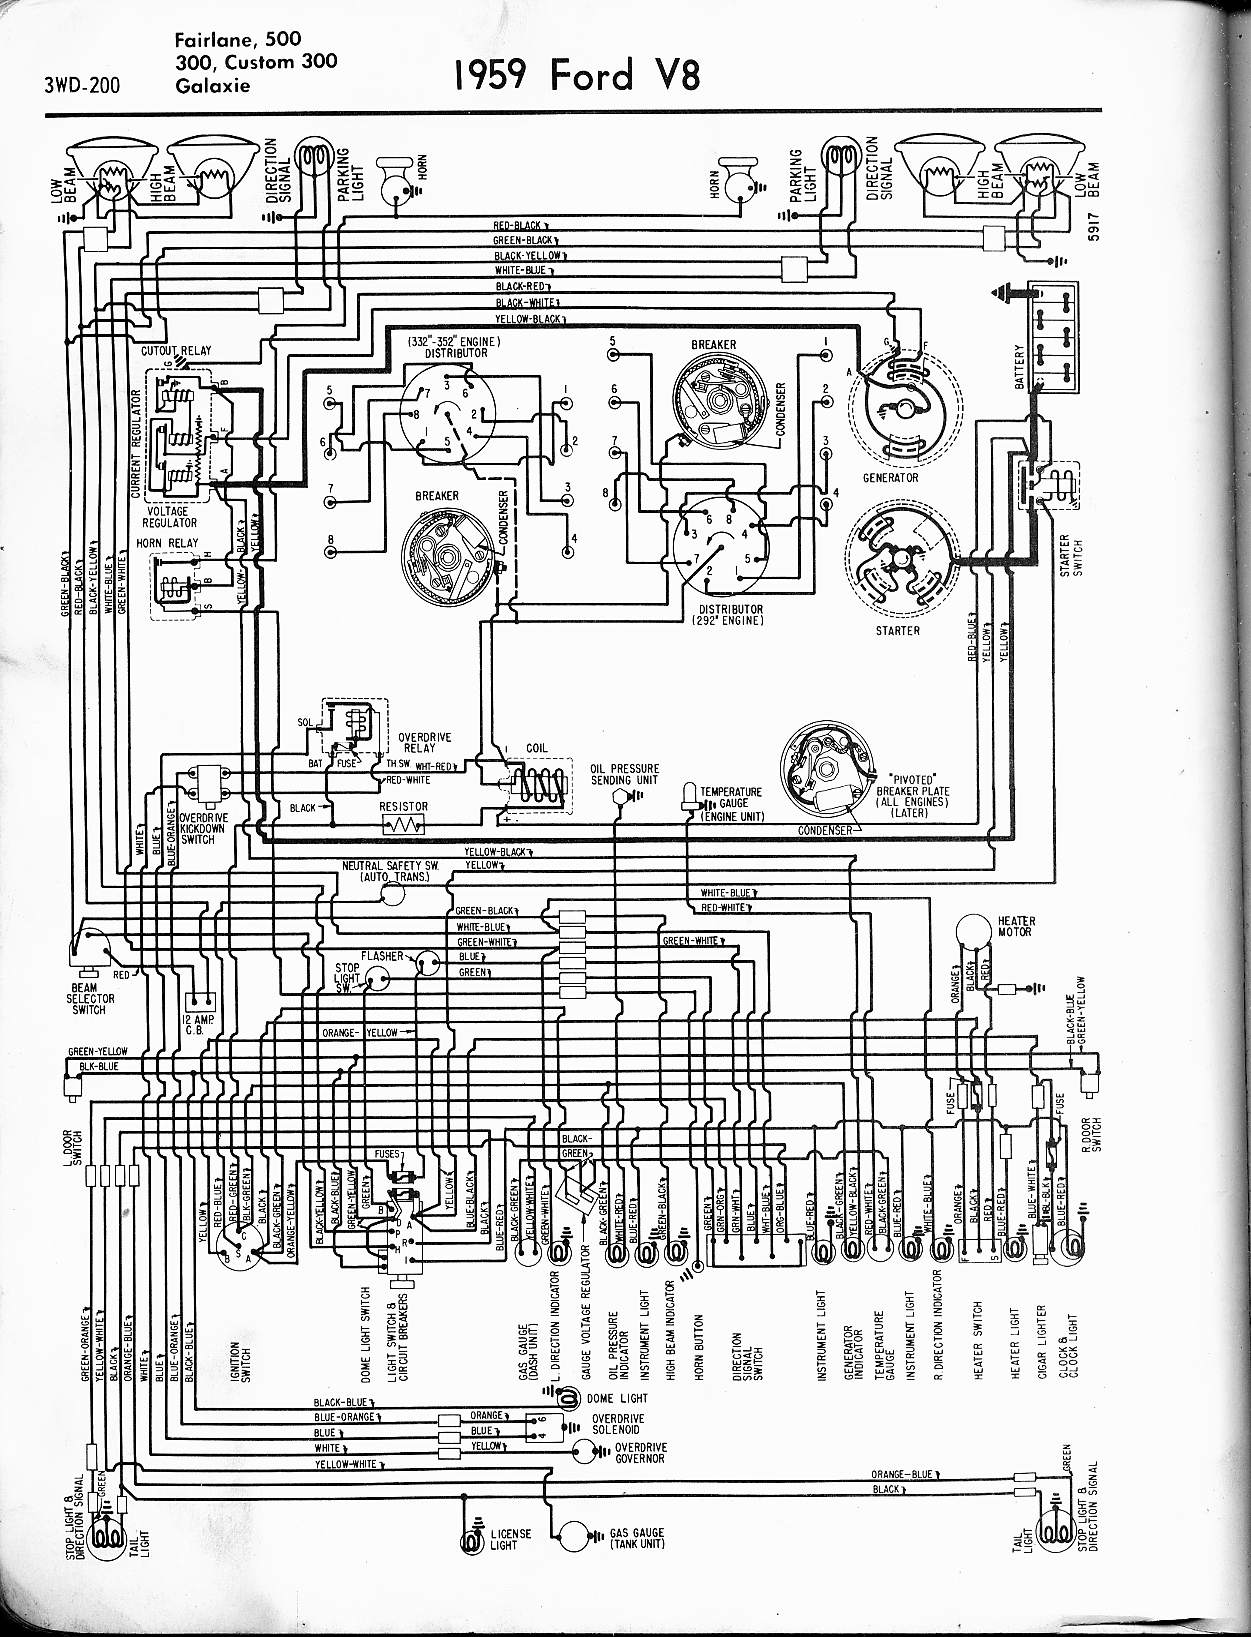 MWire5765 200 100 [ wiring diagram of car signal light ] 57 65 ford wiring ford wiring diagrams at creativeand.co